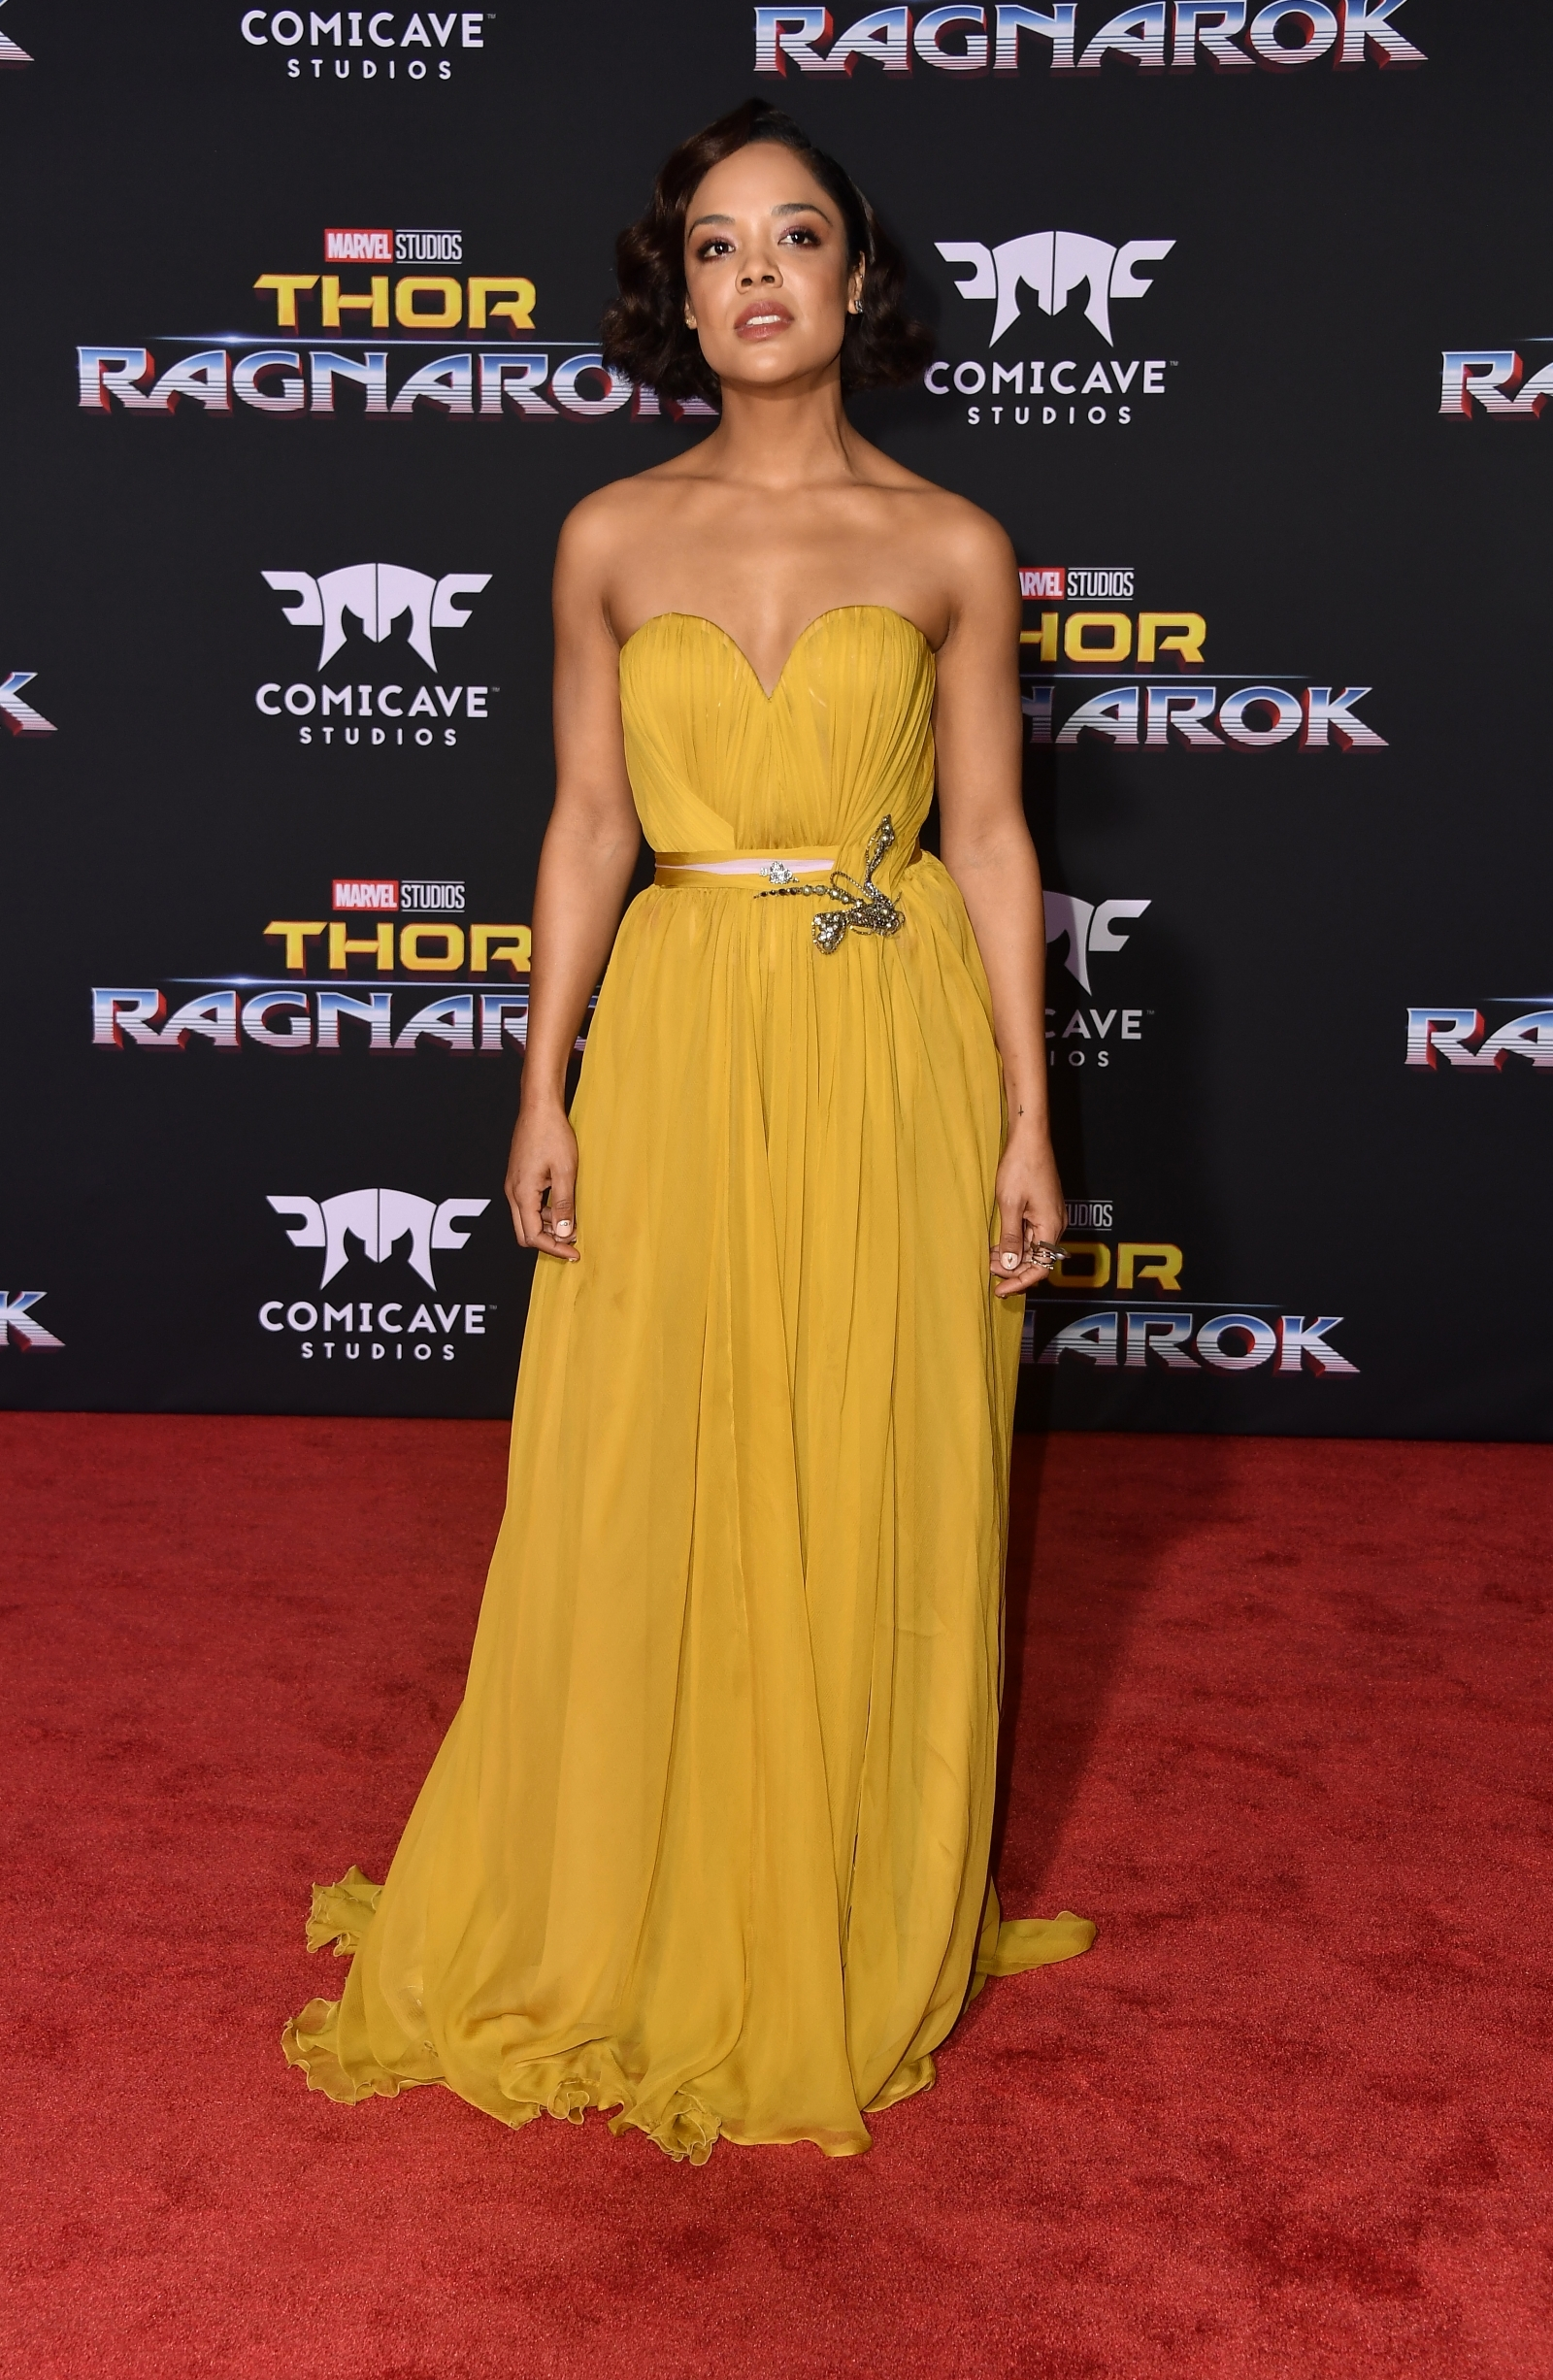 Thor: Ragnarok stars Cate Blanchett and Tessa Thompson make heads turn at red carpet premiere